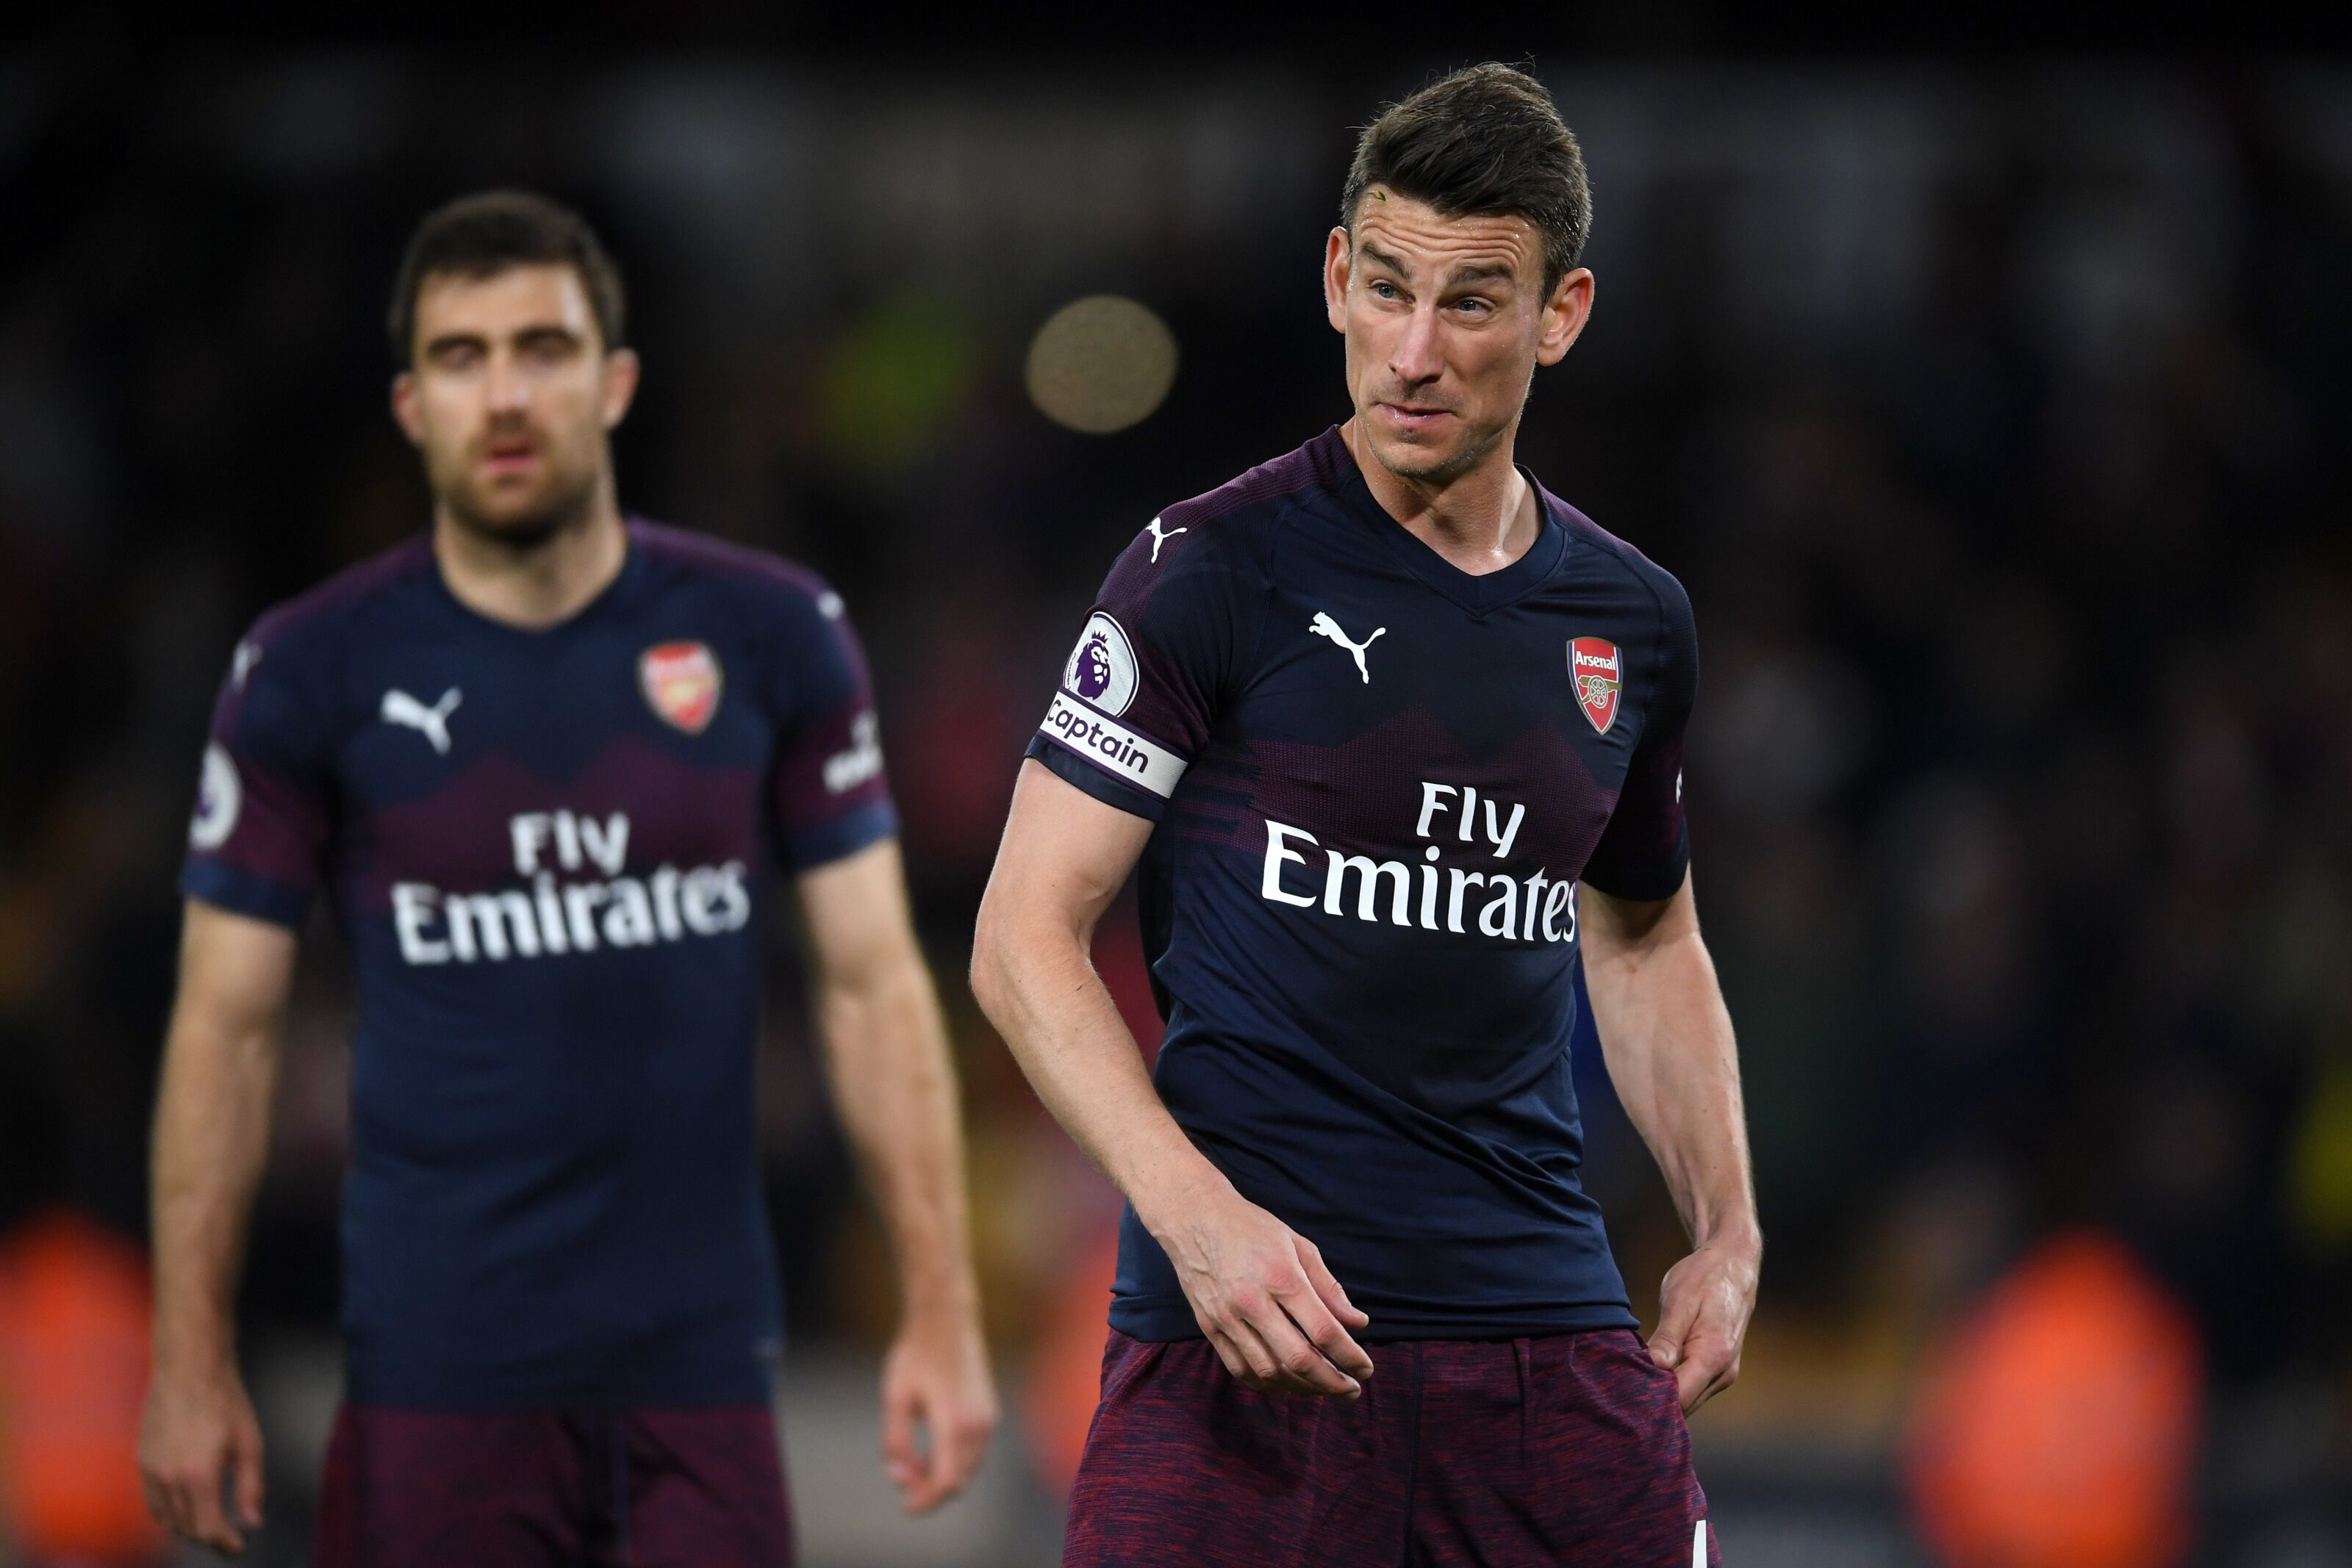 Arsenal: 3 takeaways from Samuel Umtiti for Laurent Koscielny